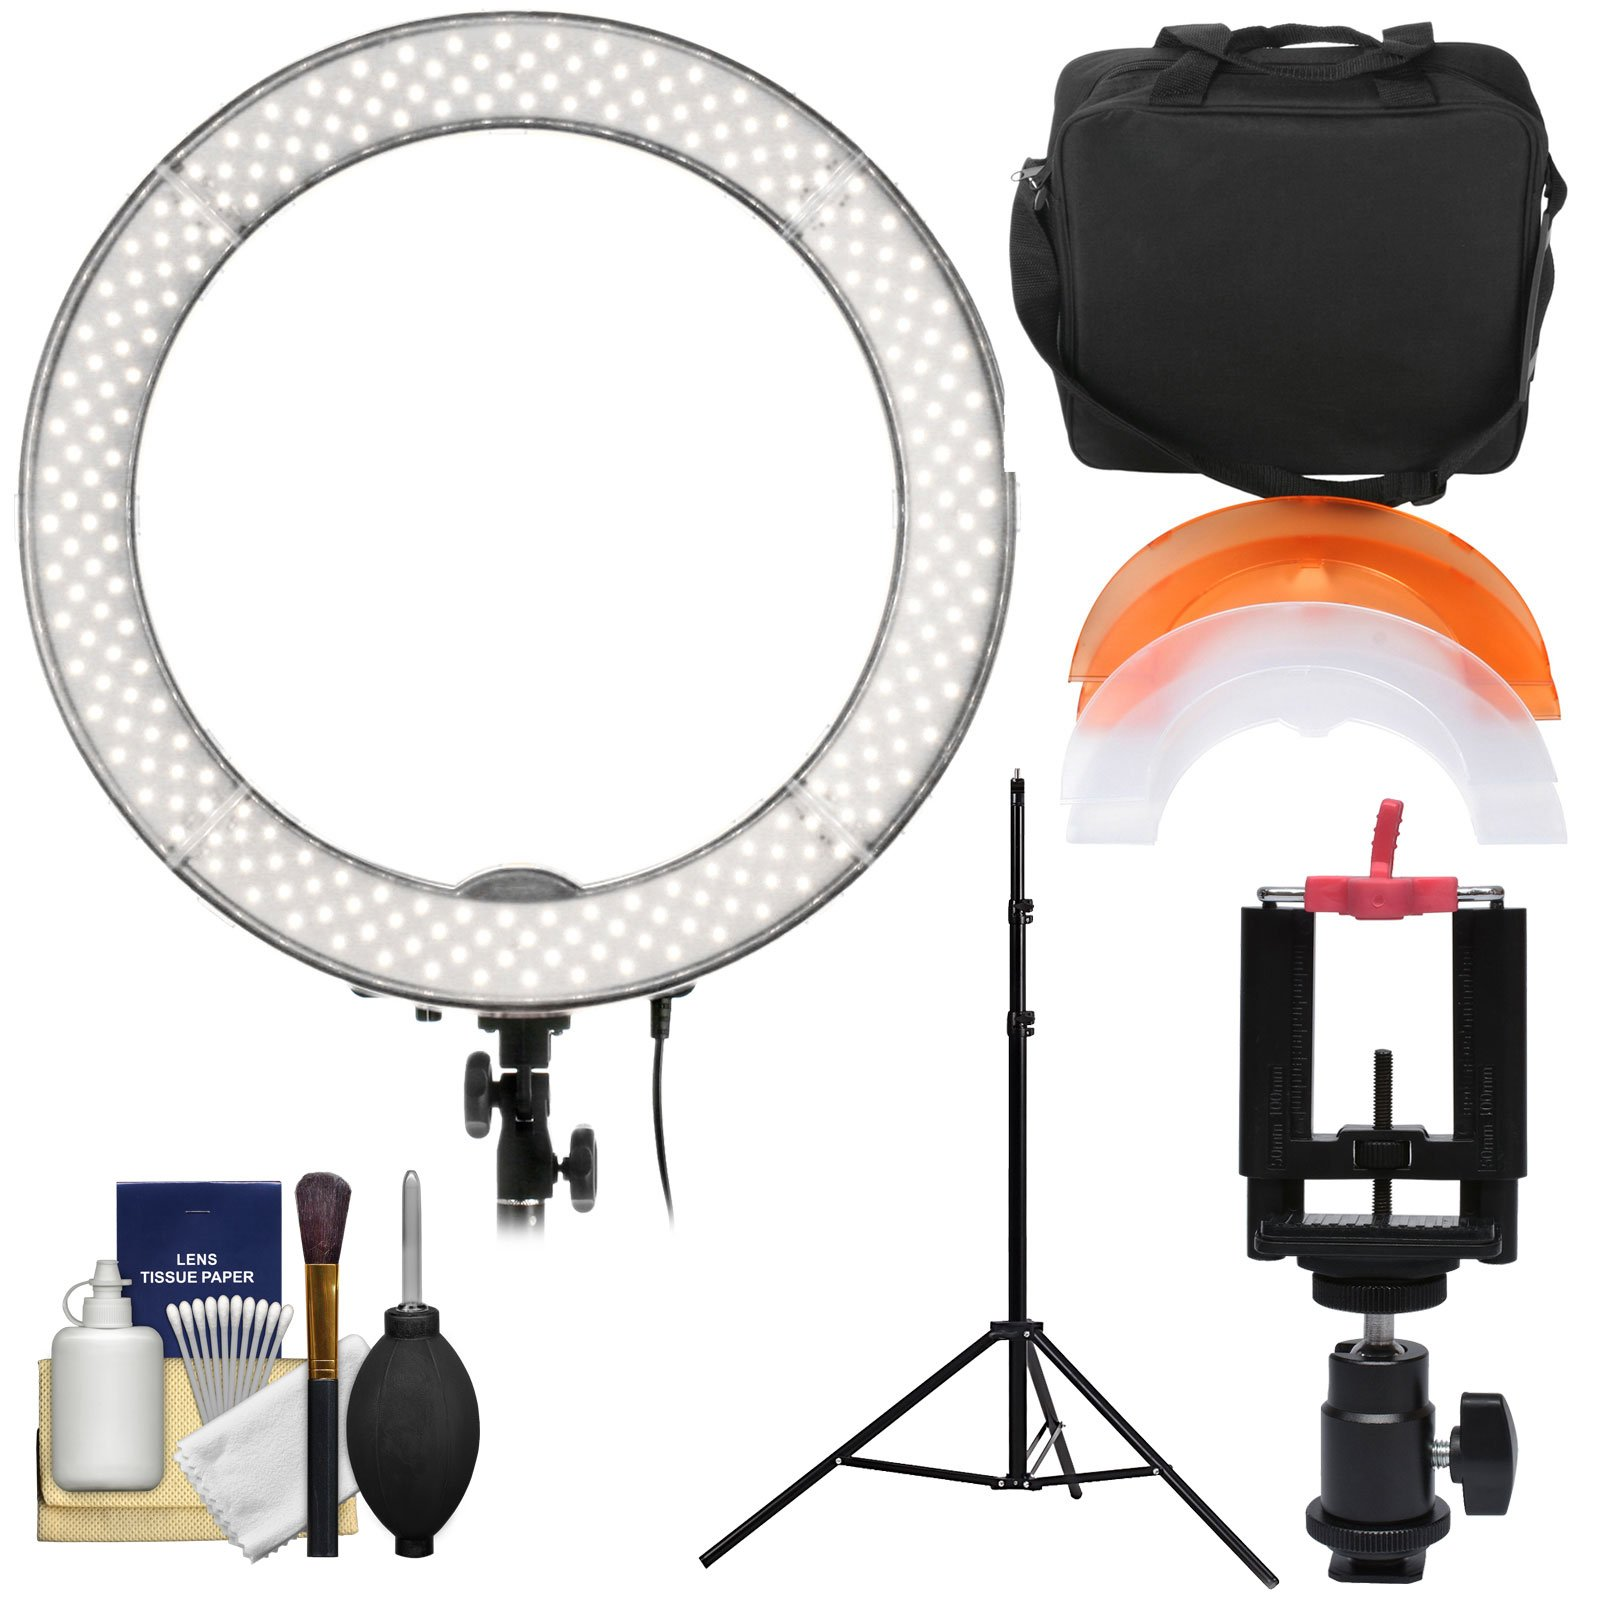 Smith-Victor 19'' LED Ring Light & Case with Smartphone Mounting Adapter & Ball Head + Light Stand + Kit by Smith-Victor (Image #1)